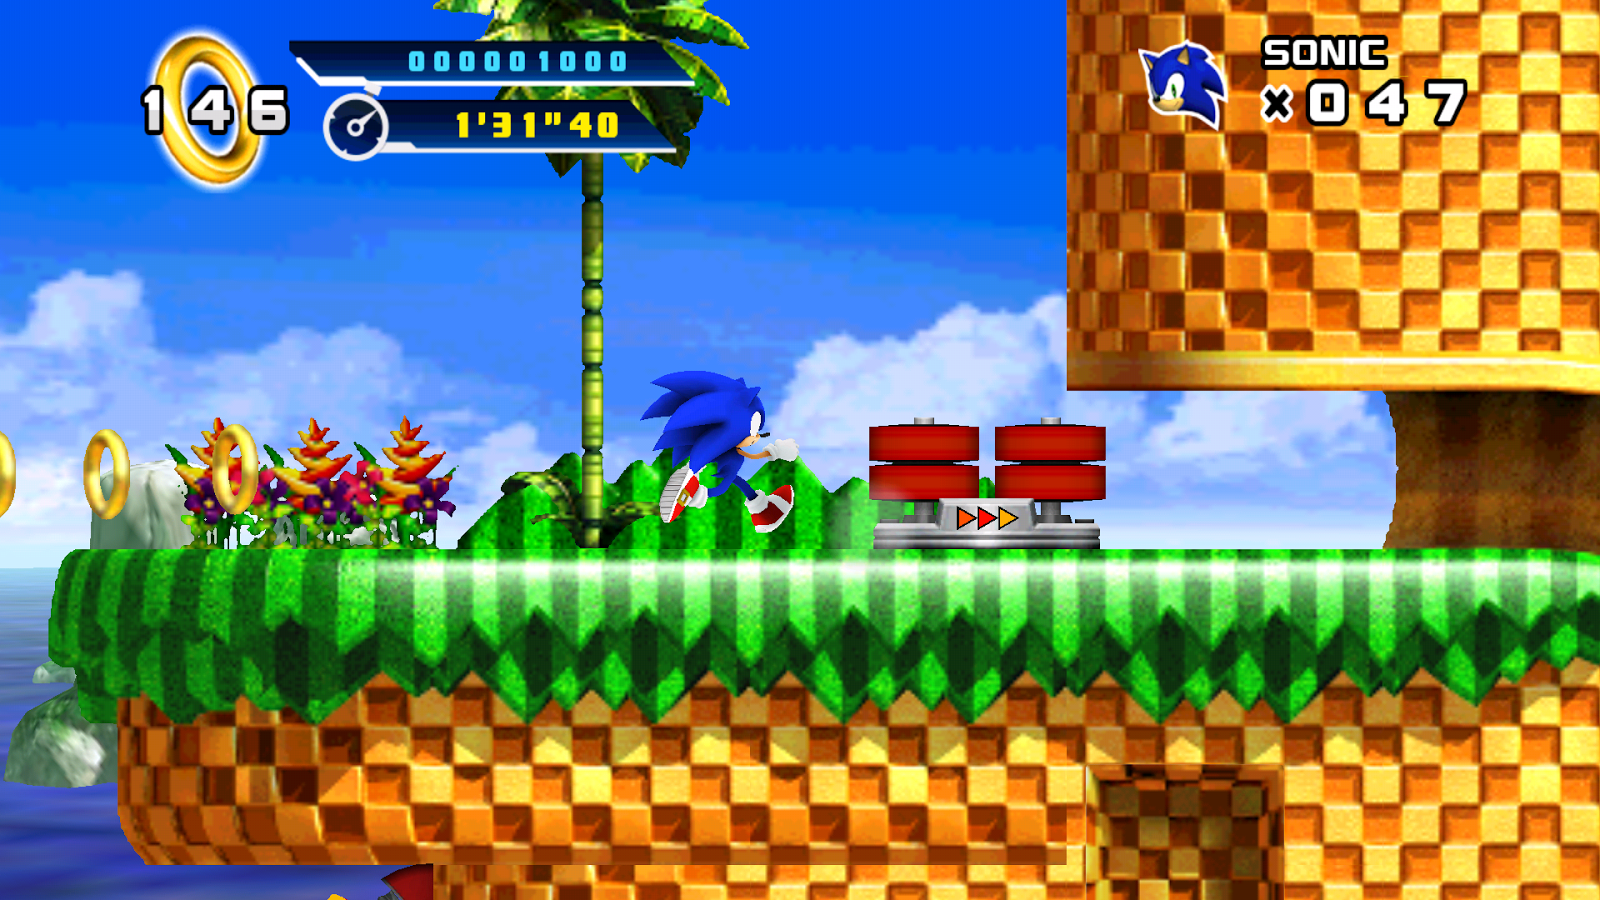 sonic 4 episode i aplikacje na androida w google play. Black Bedroom Furniture Sets. Home Design Ideas